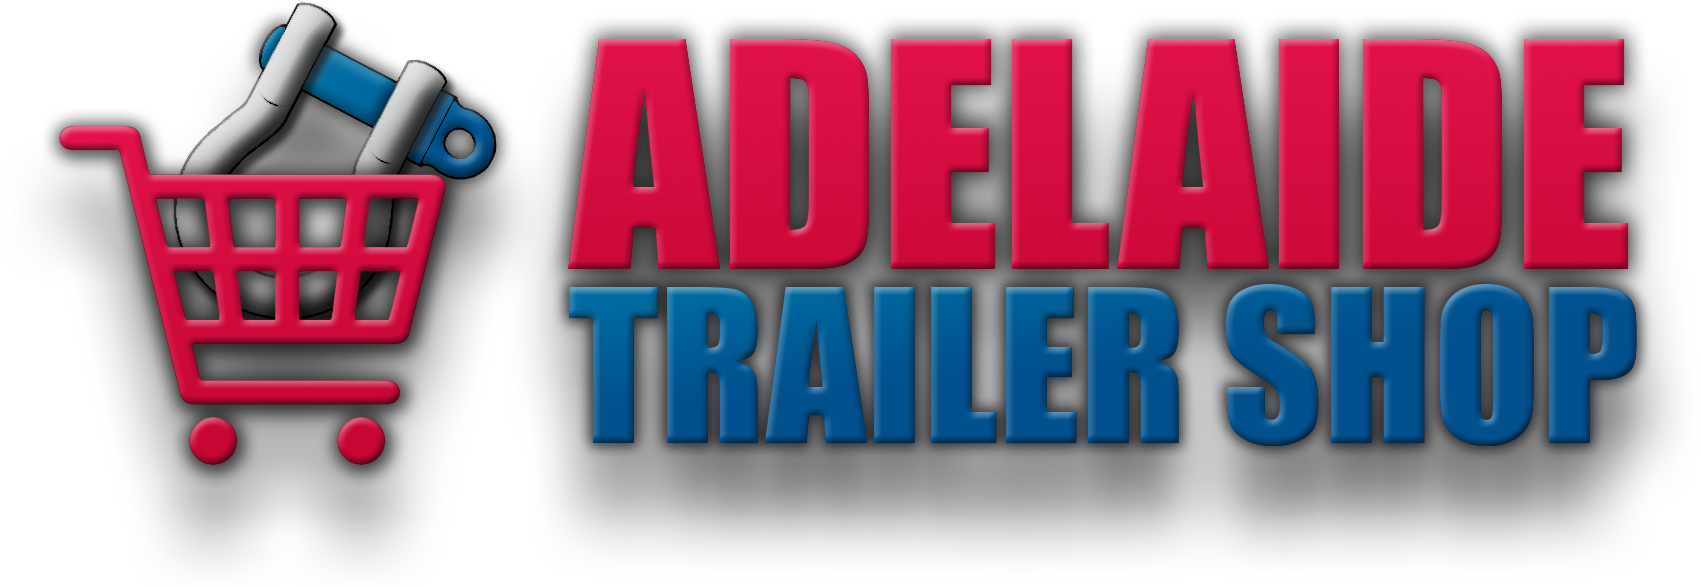 Adelaide Trailer Shop